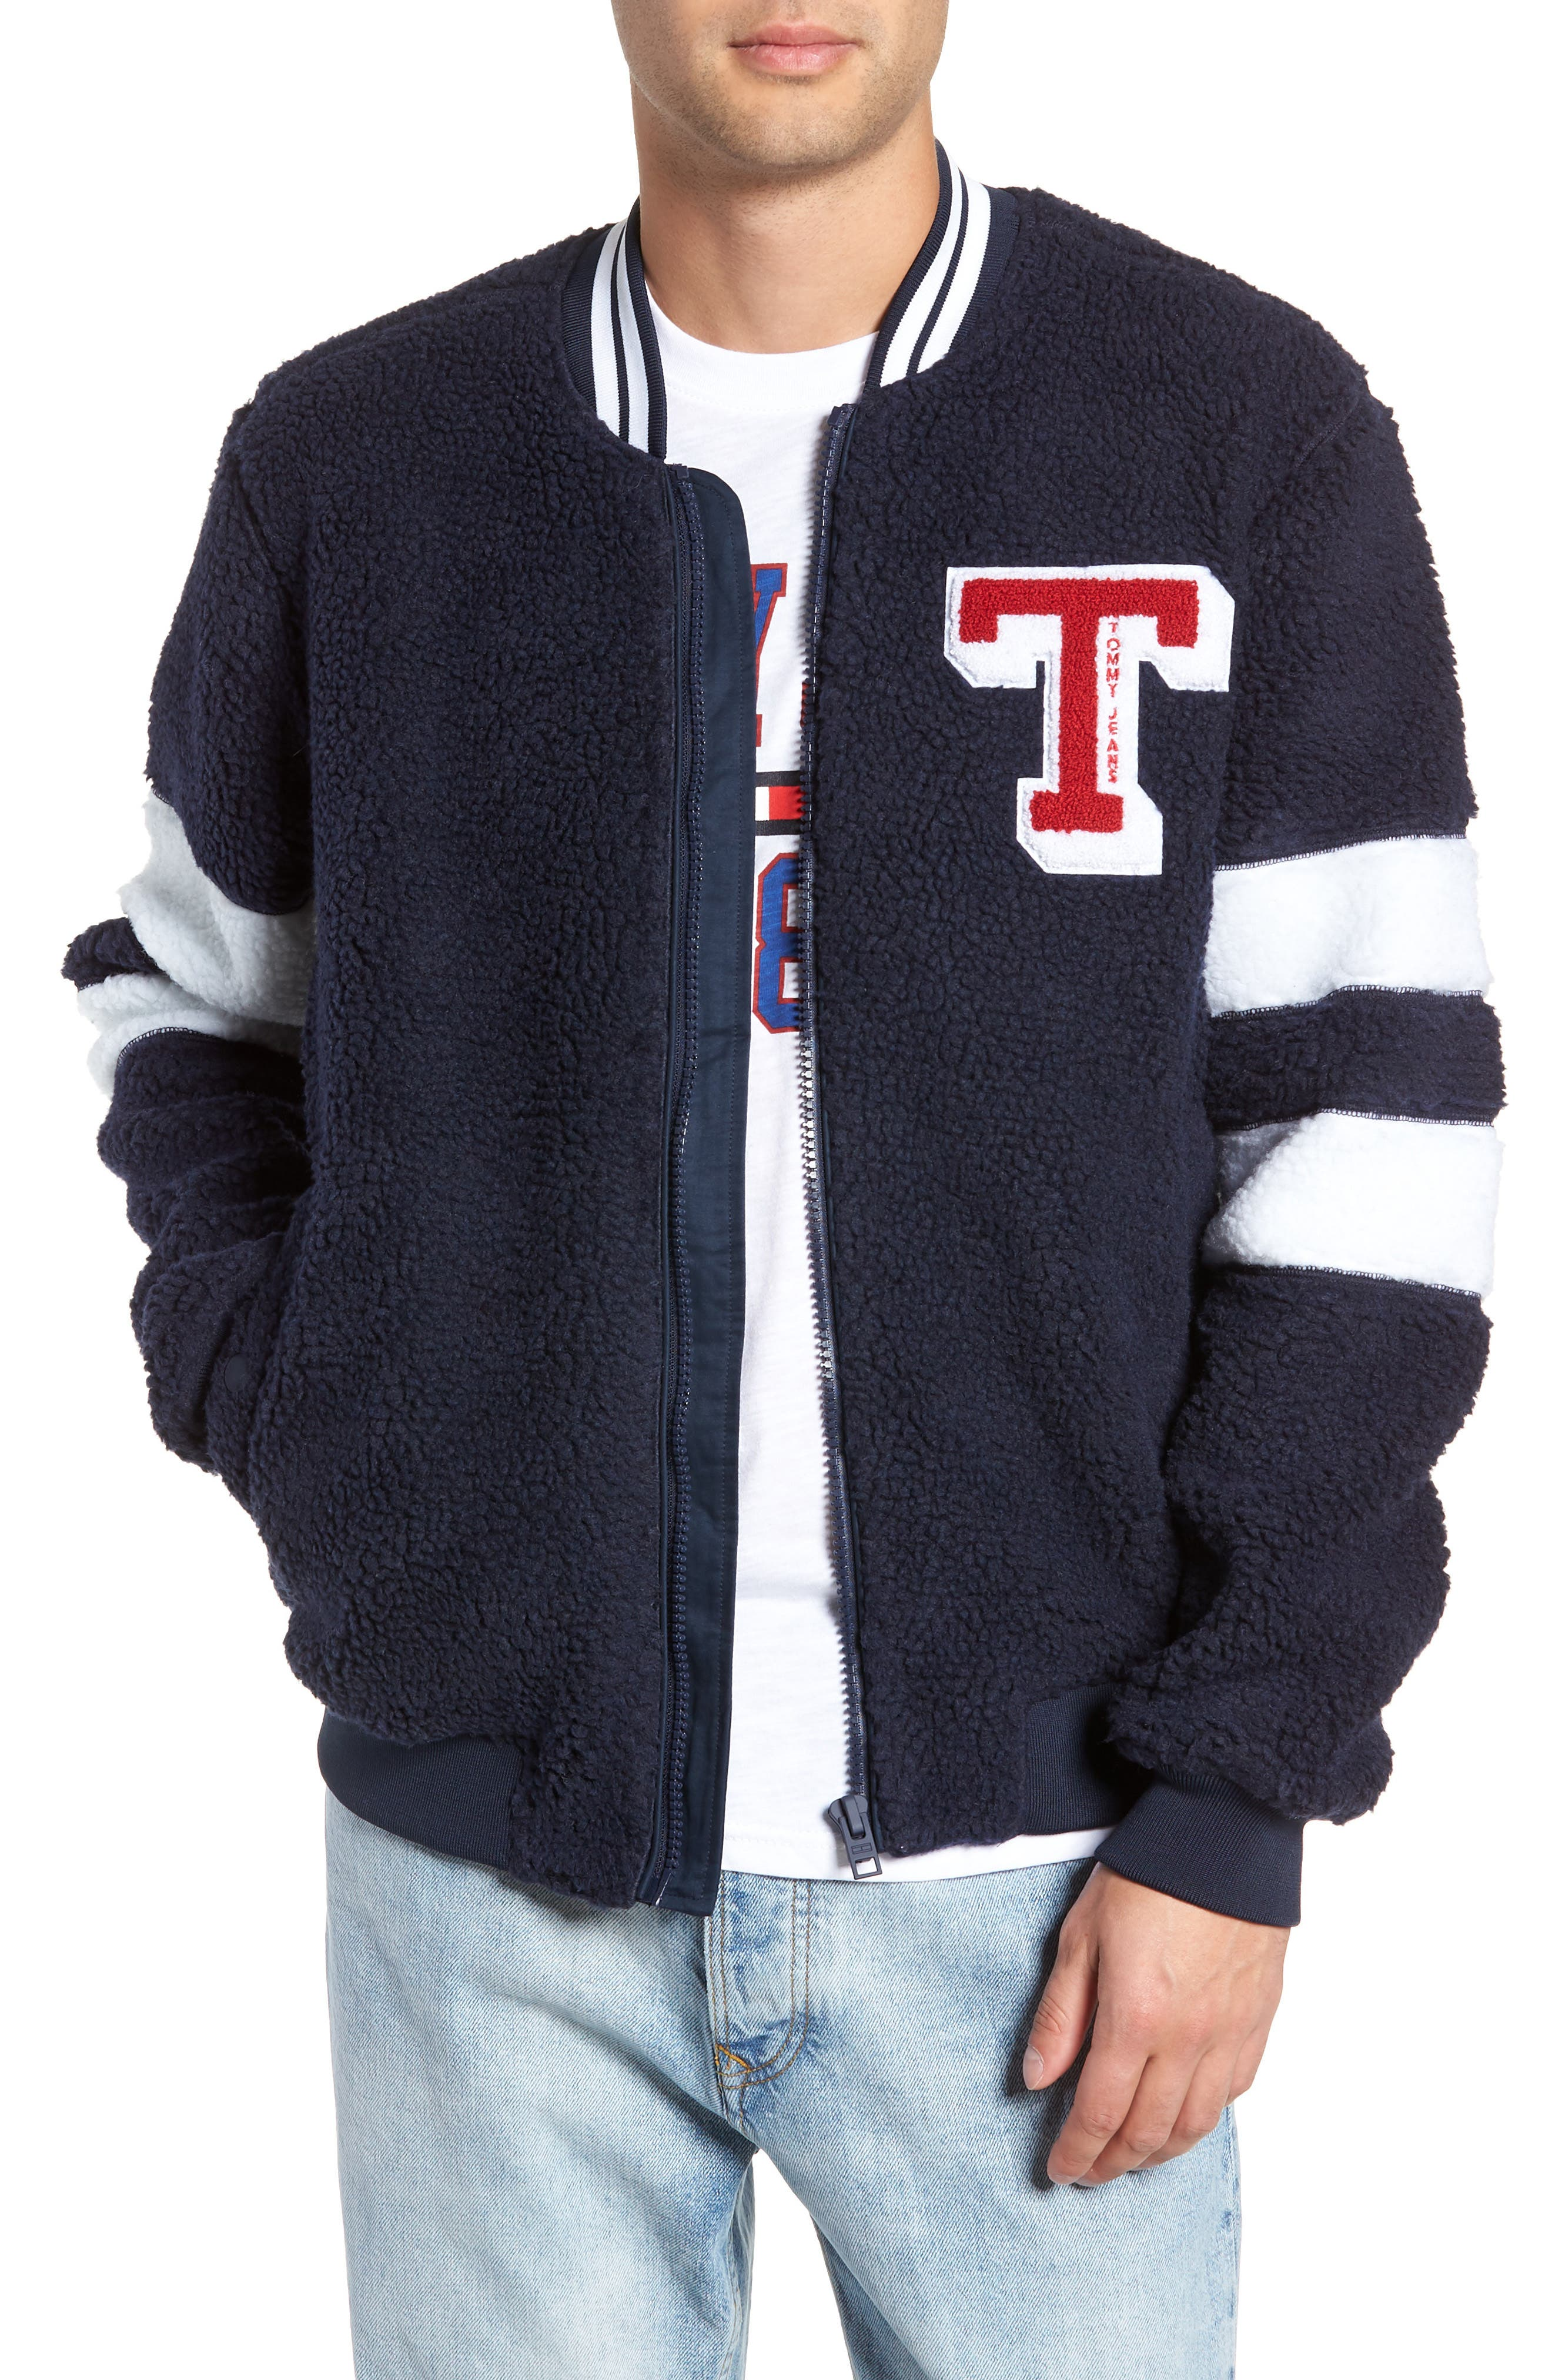 TOMMY JEANS,                             TJM Teddy Bomber Jacket,                             Main thumbnail 1, color,                             400